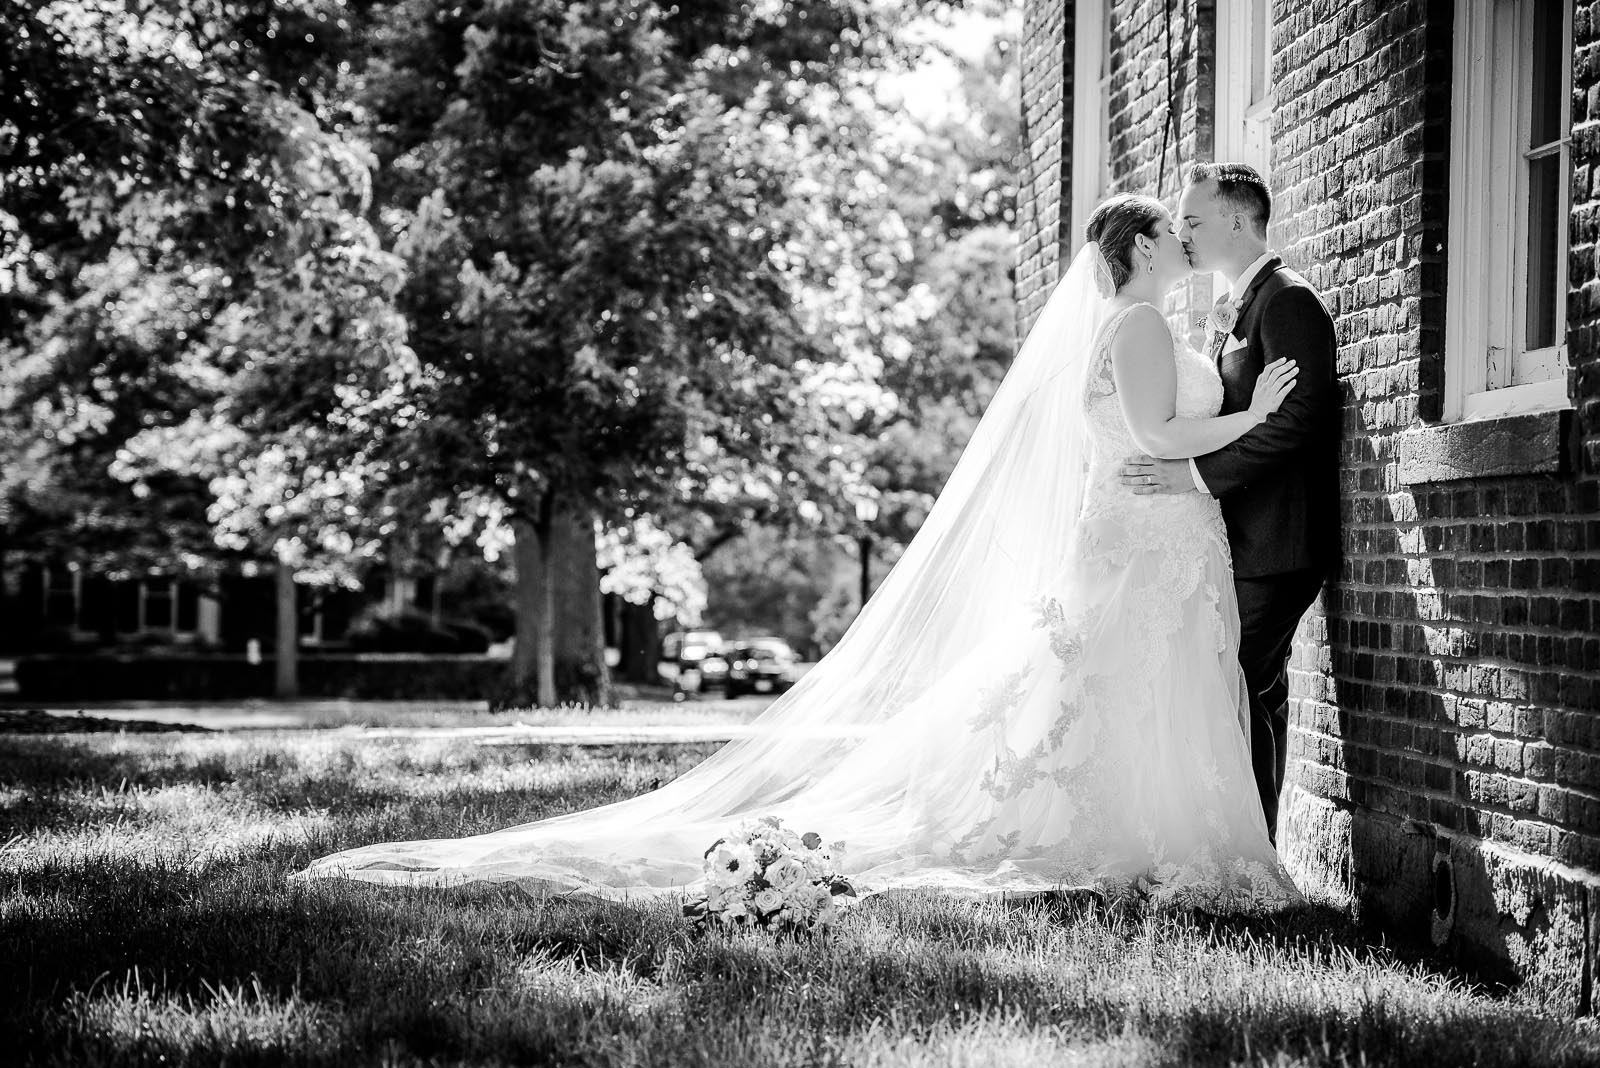 Eric_and_Christy_Photography_Blog_Wedding_Paige_Eric-36